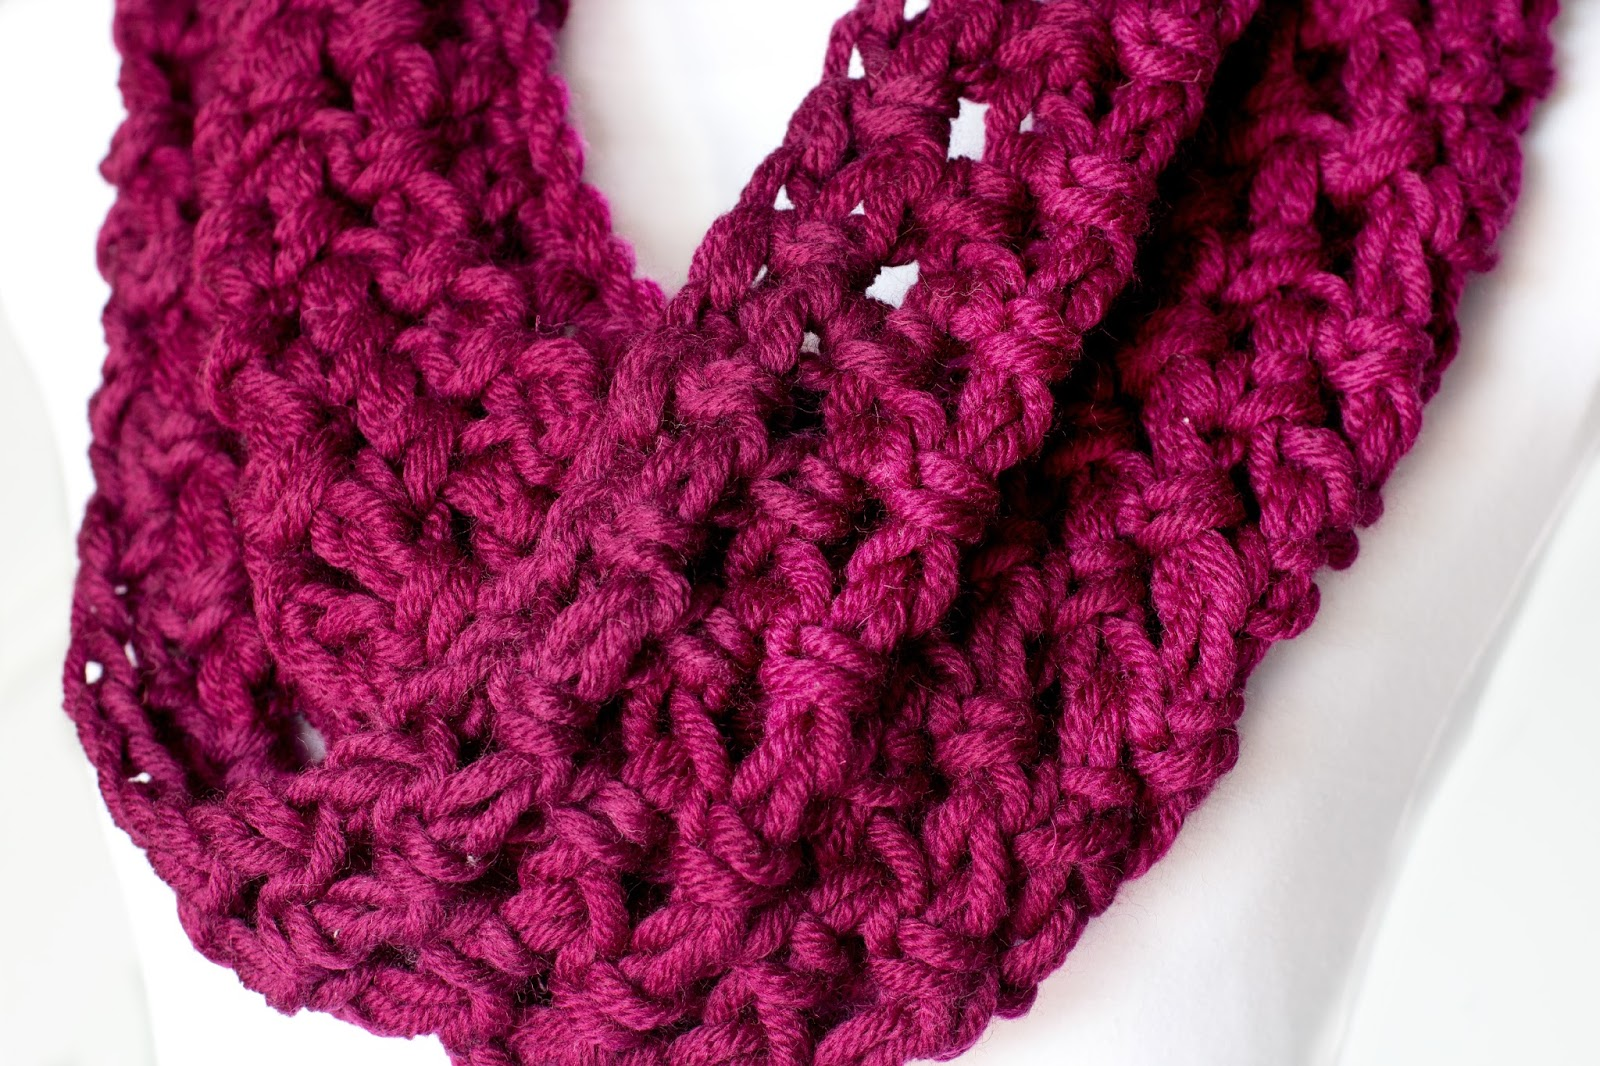 Crochet Stitches Chunky : ... Honey Craft, Crochet, Create: Basic Chunky Cowl Crochet Pattern